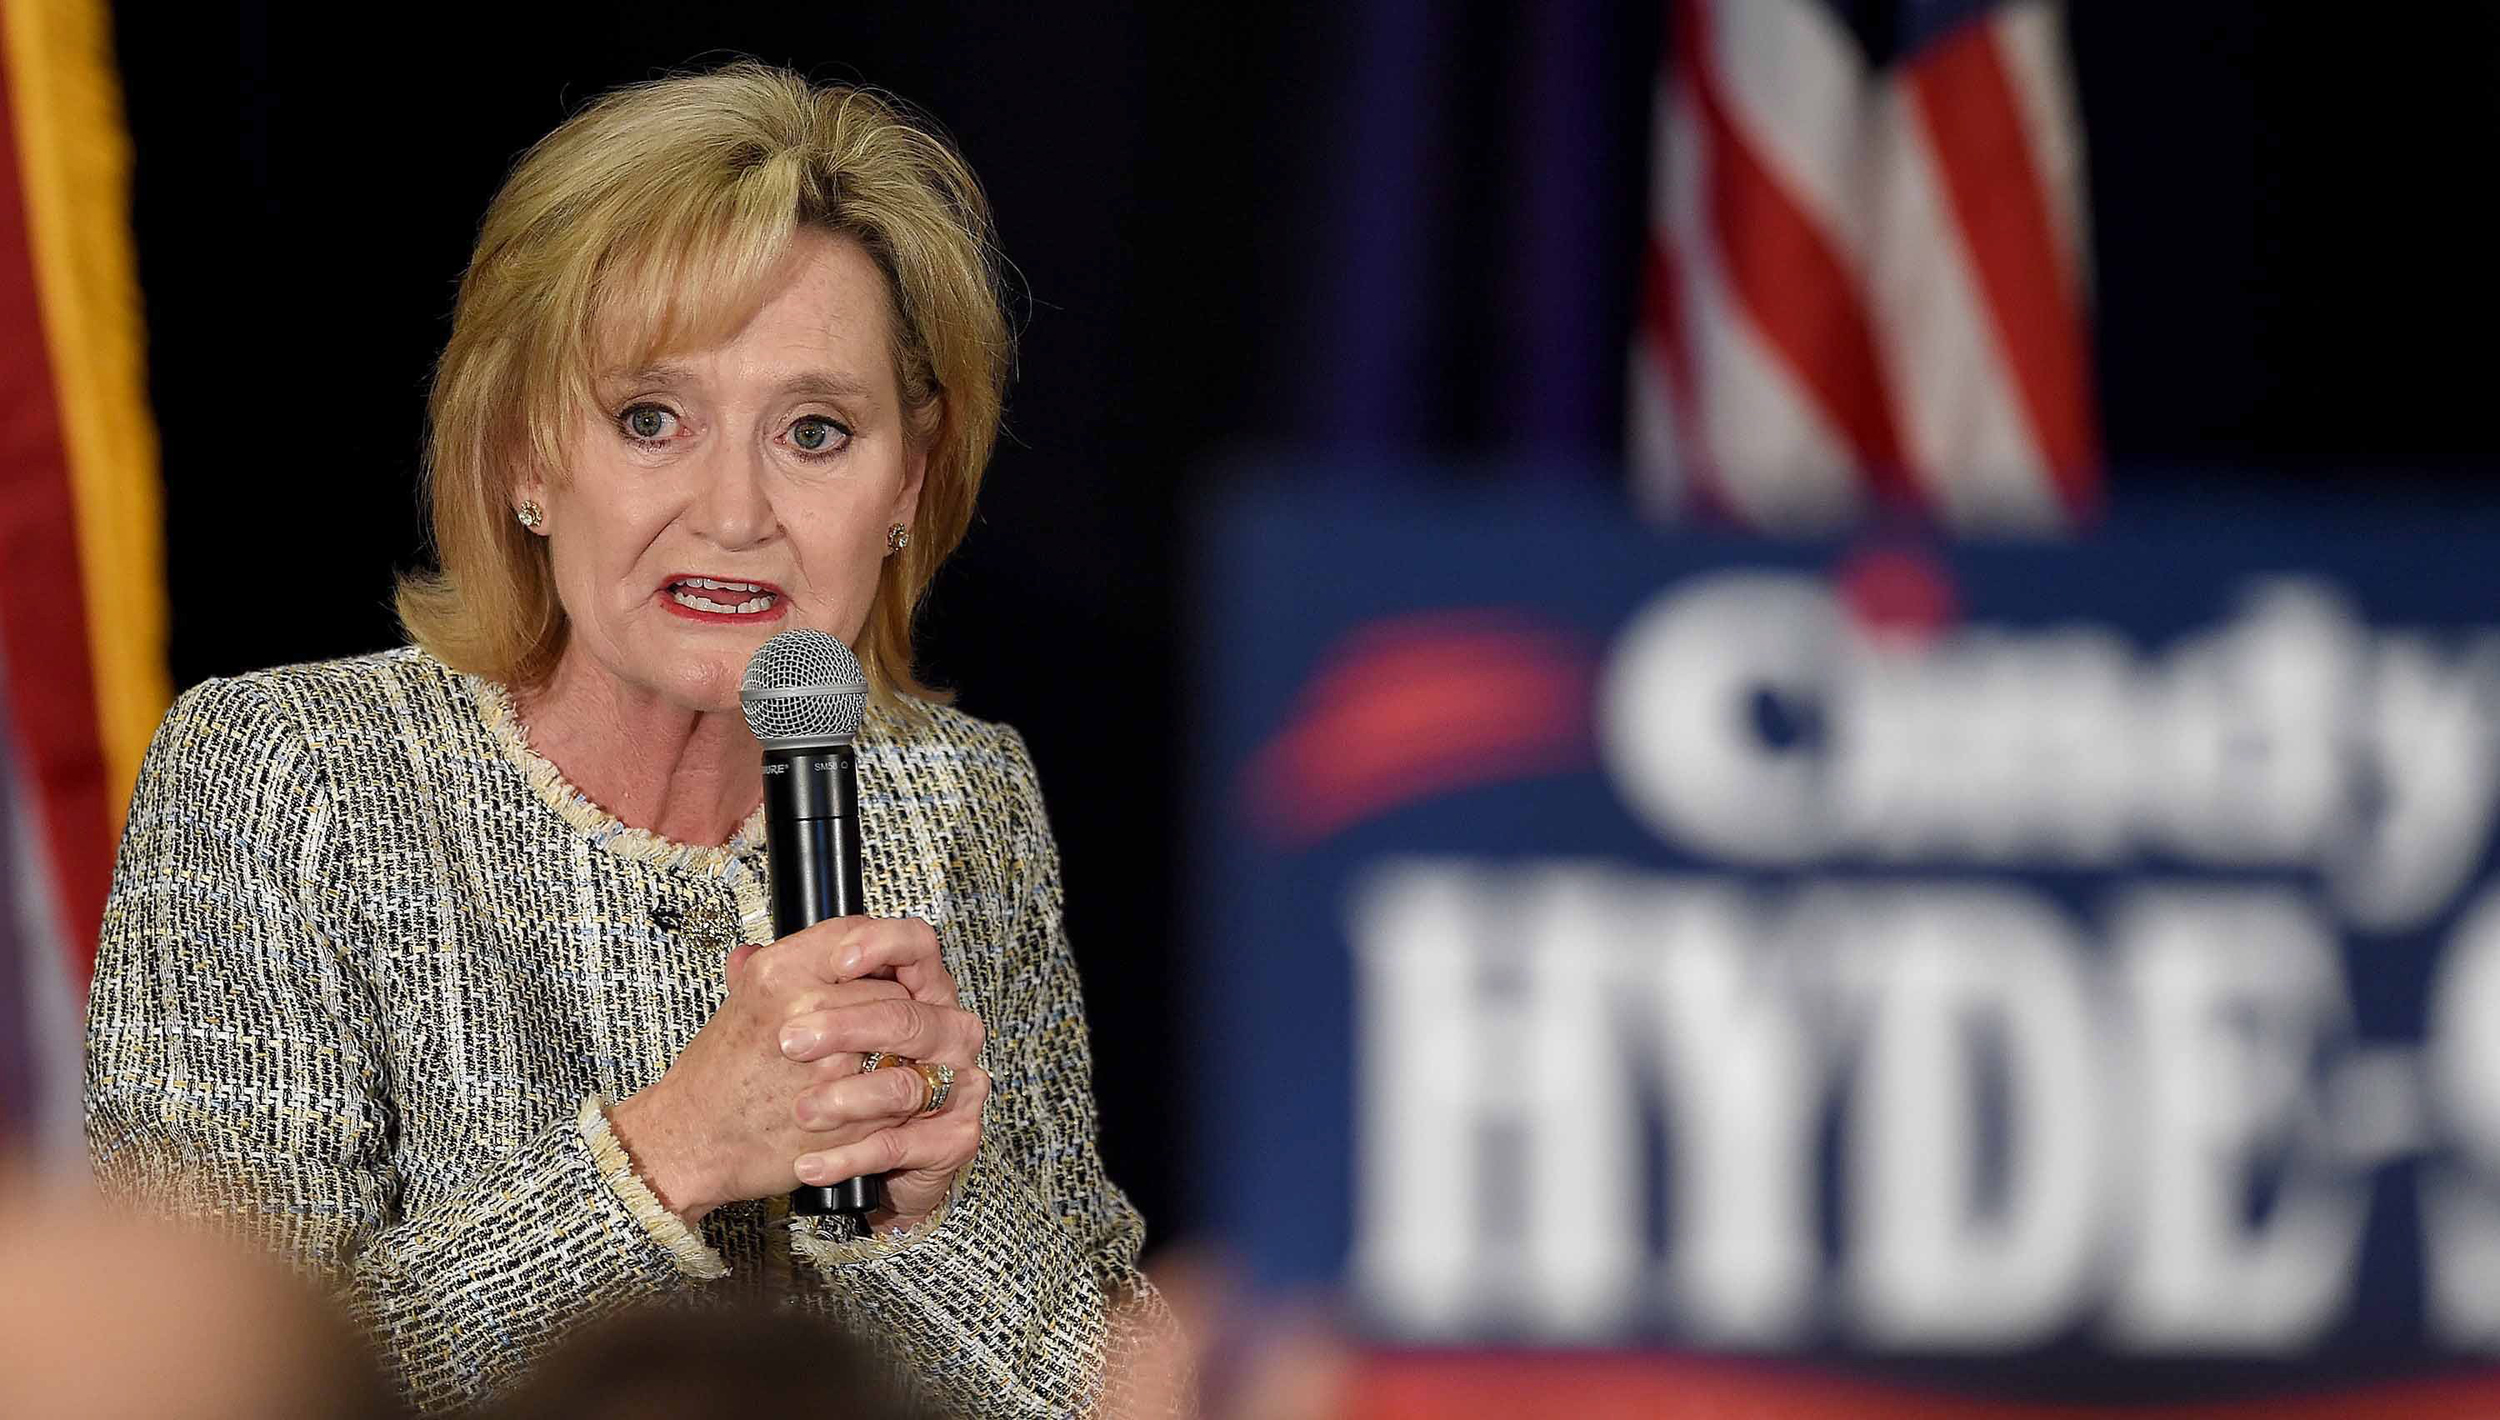 nbcnews.com - Walmart withdraws donations to GOP Sen. Cindy Hyde-Smith after criticism